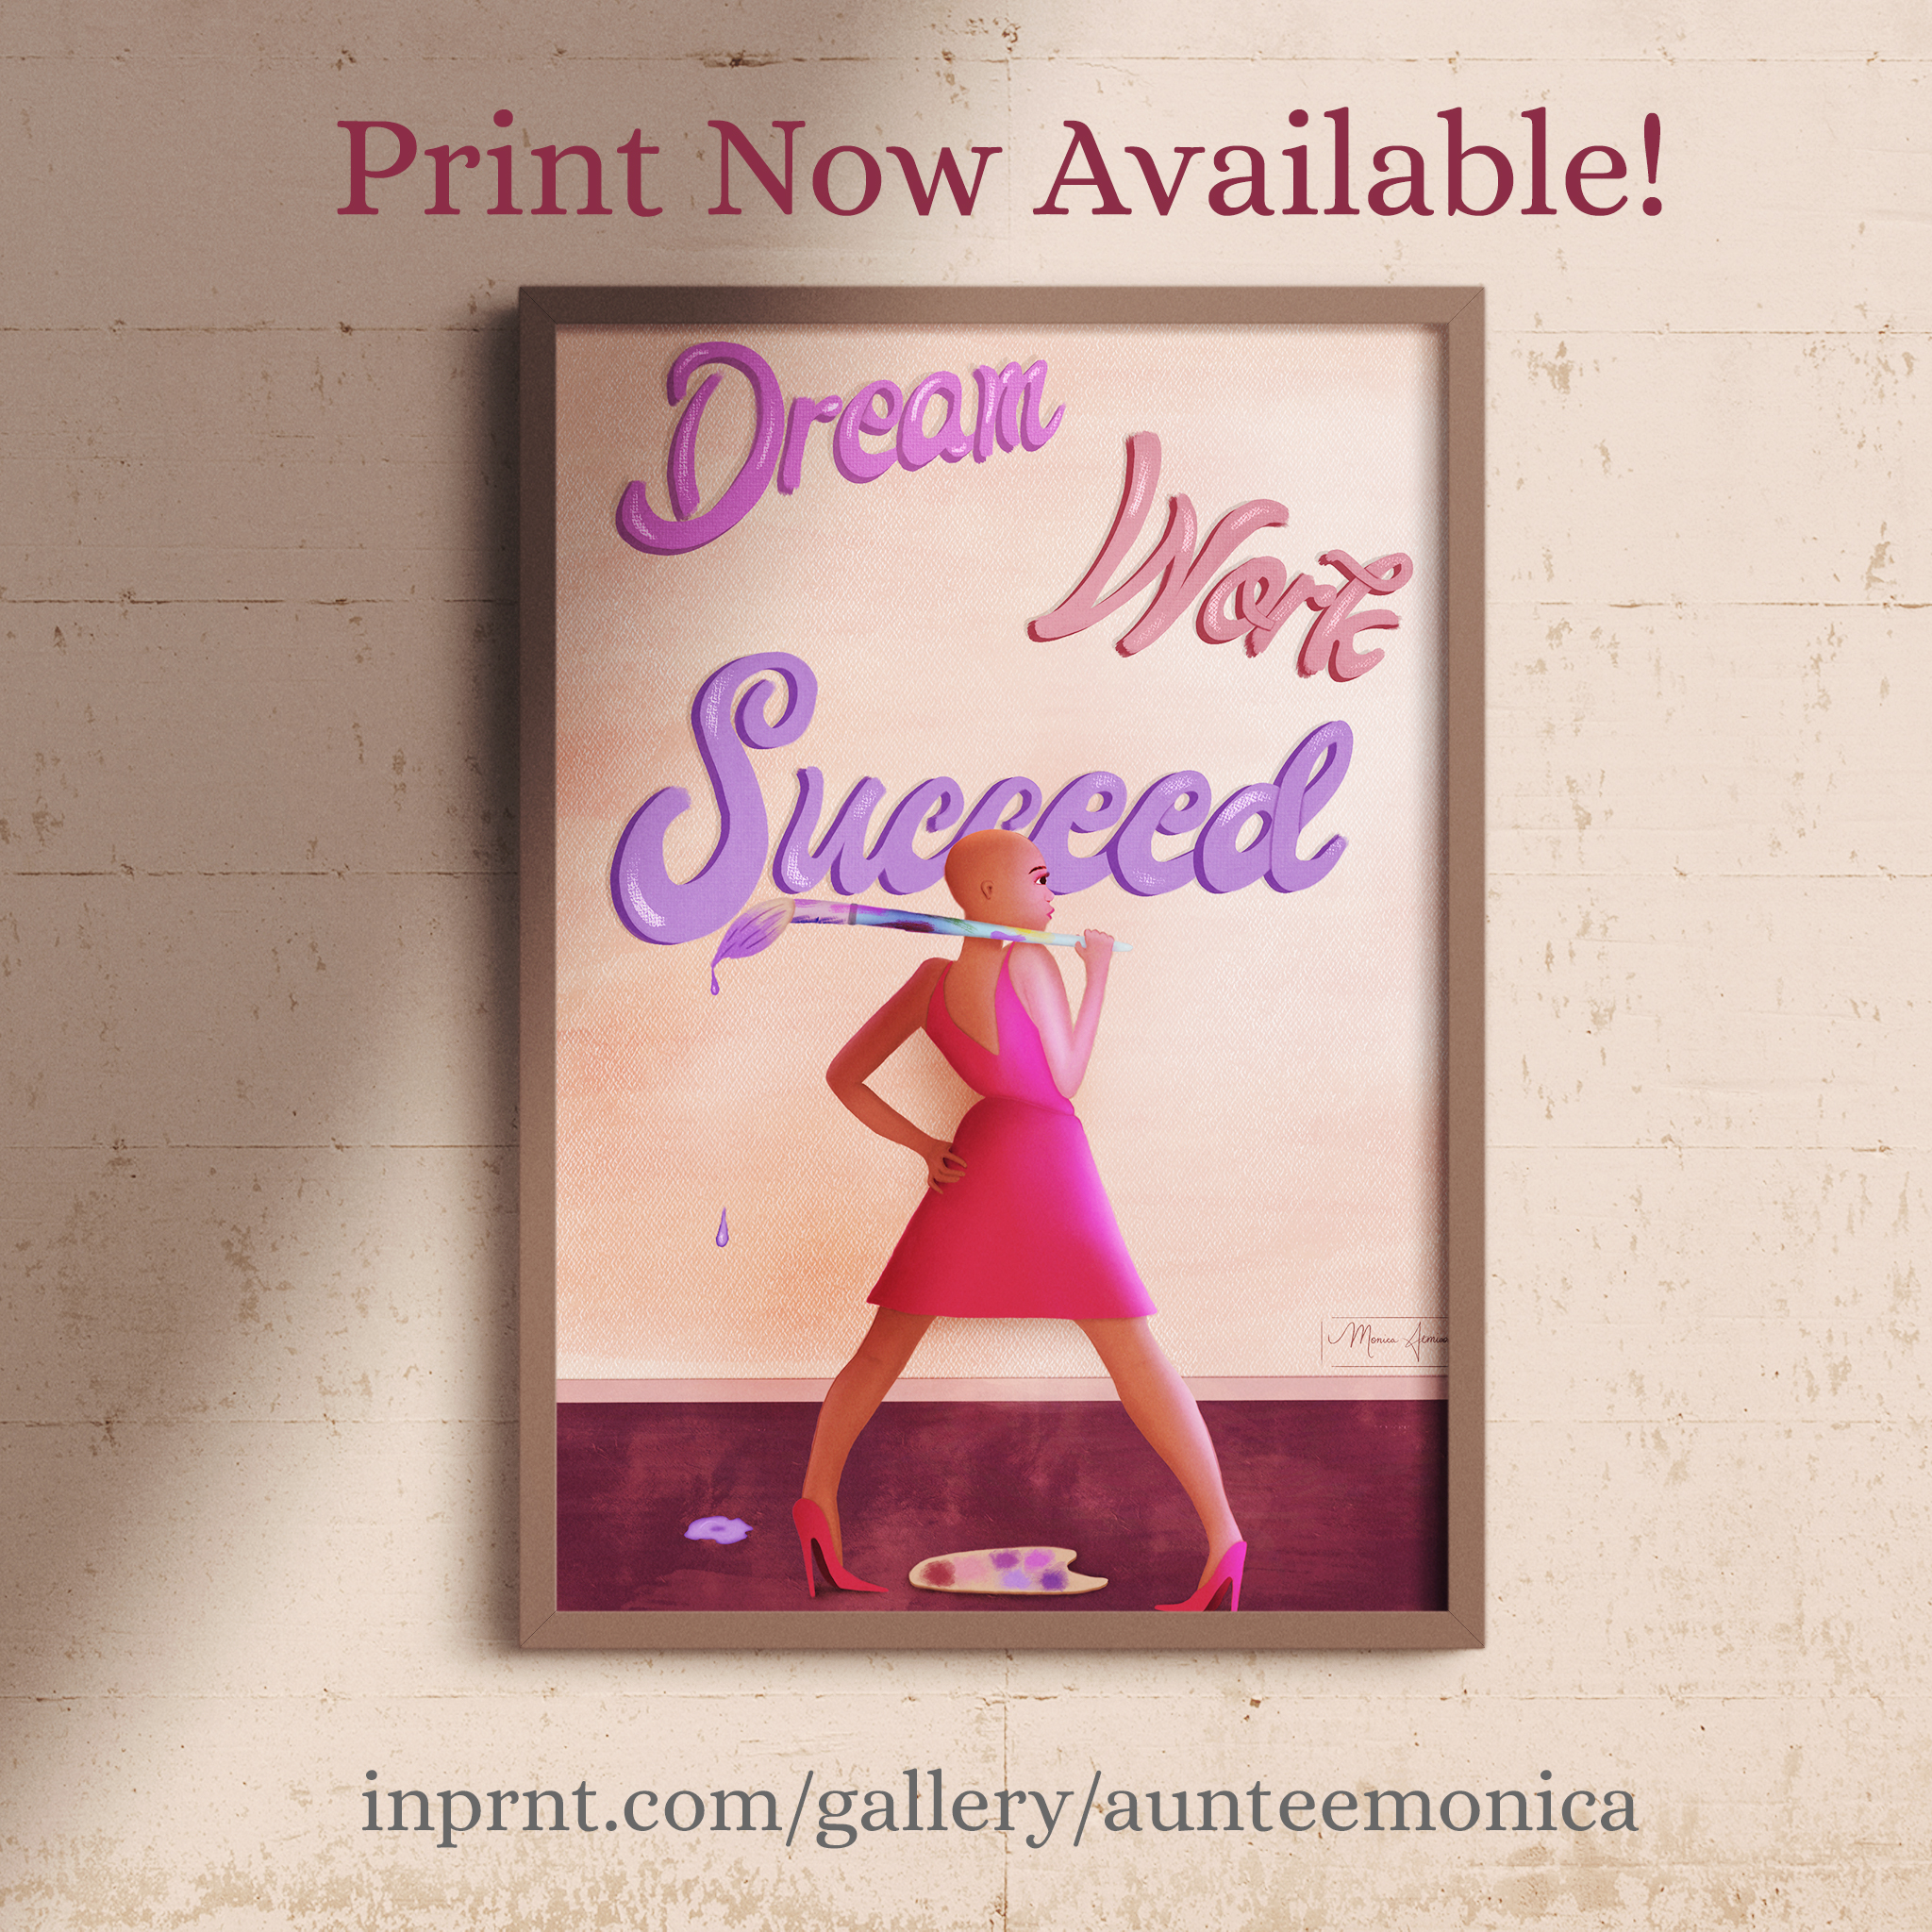 Dream-Work-Succeed-Frame